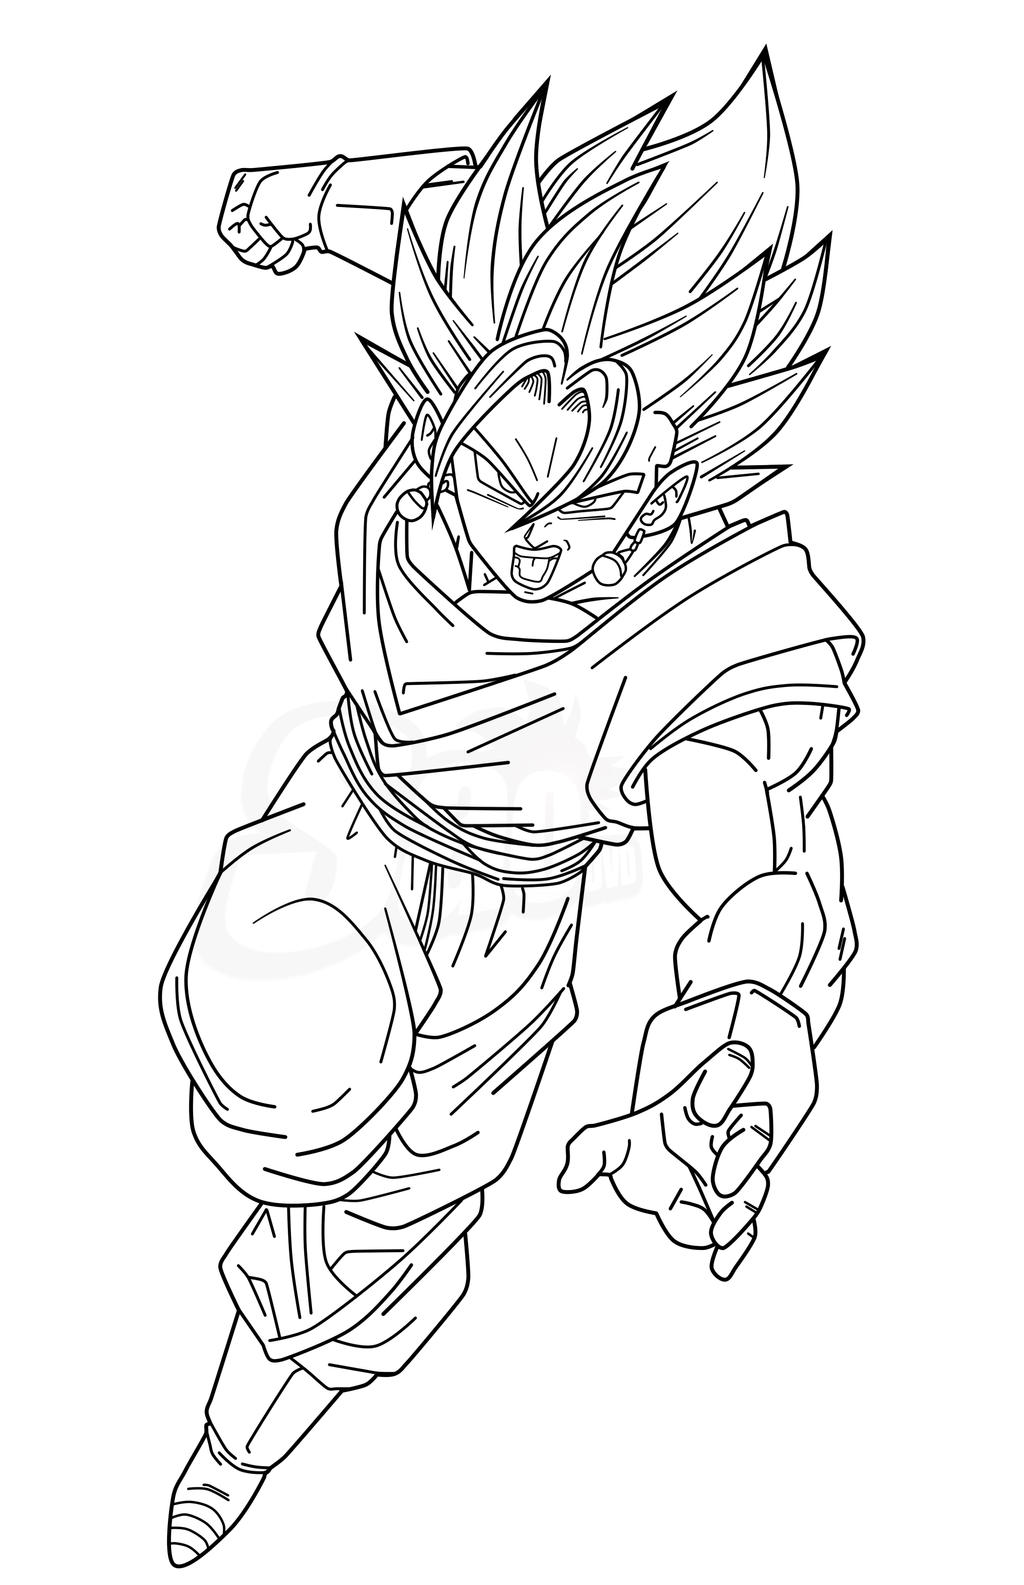 Vegeto super saiyan 4 free colouring pages for Dbz coloring pages